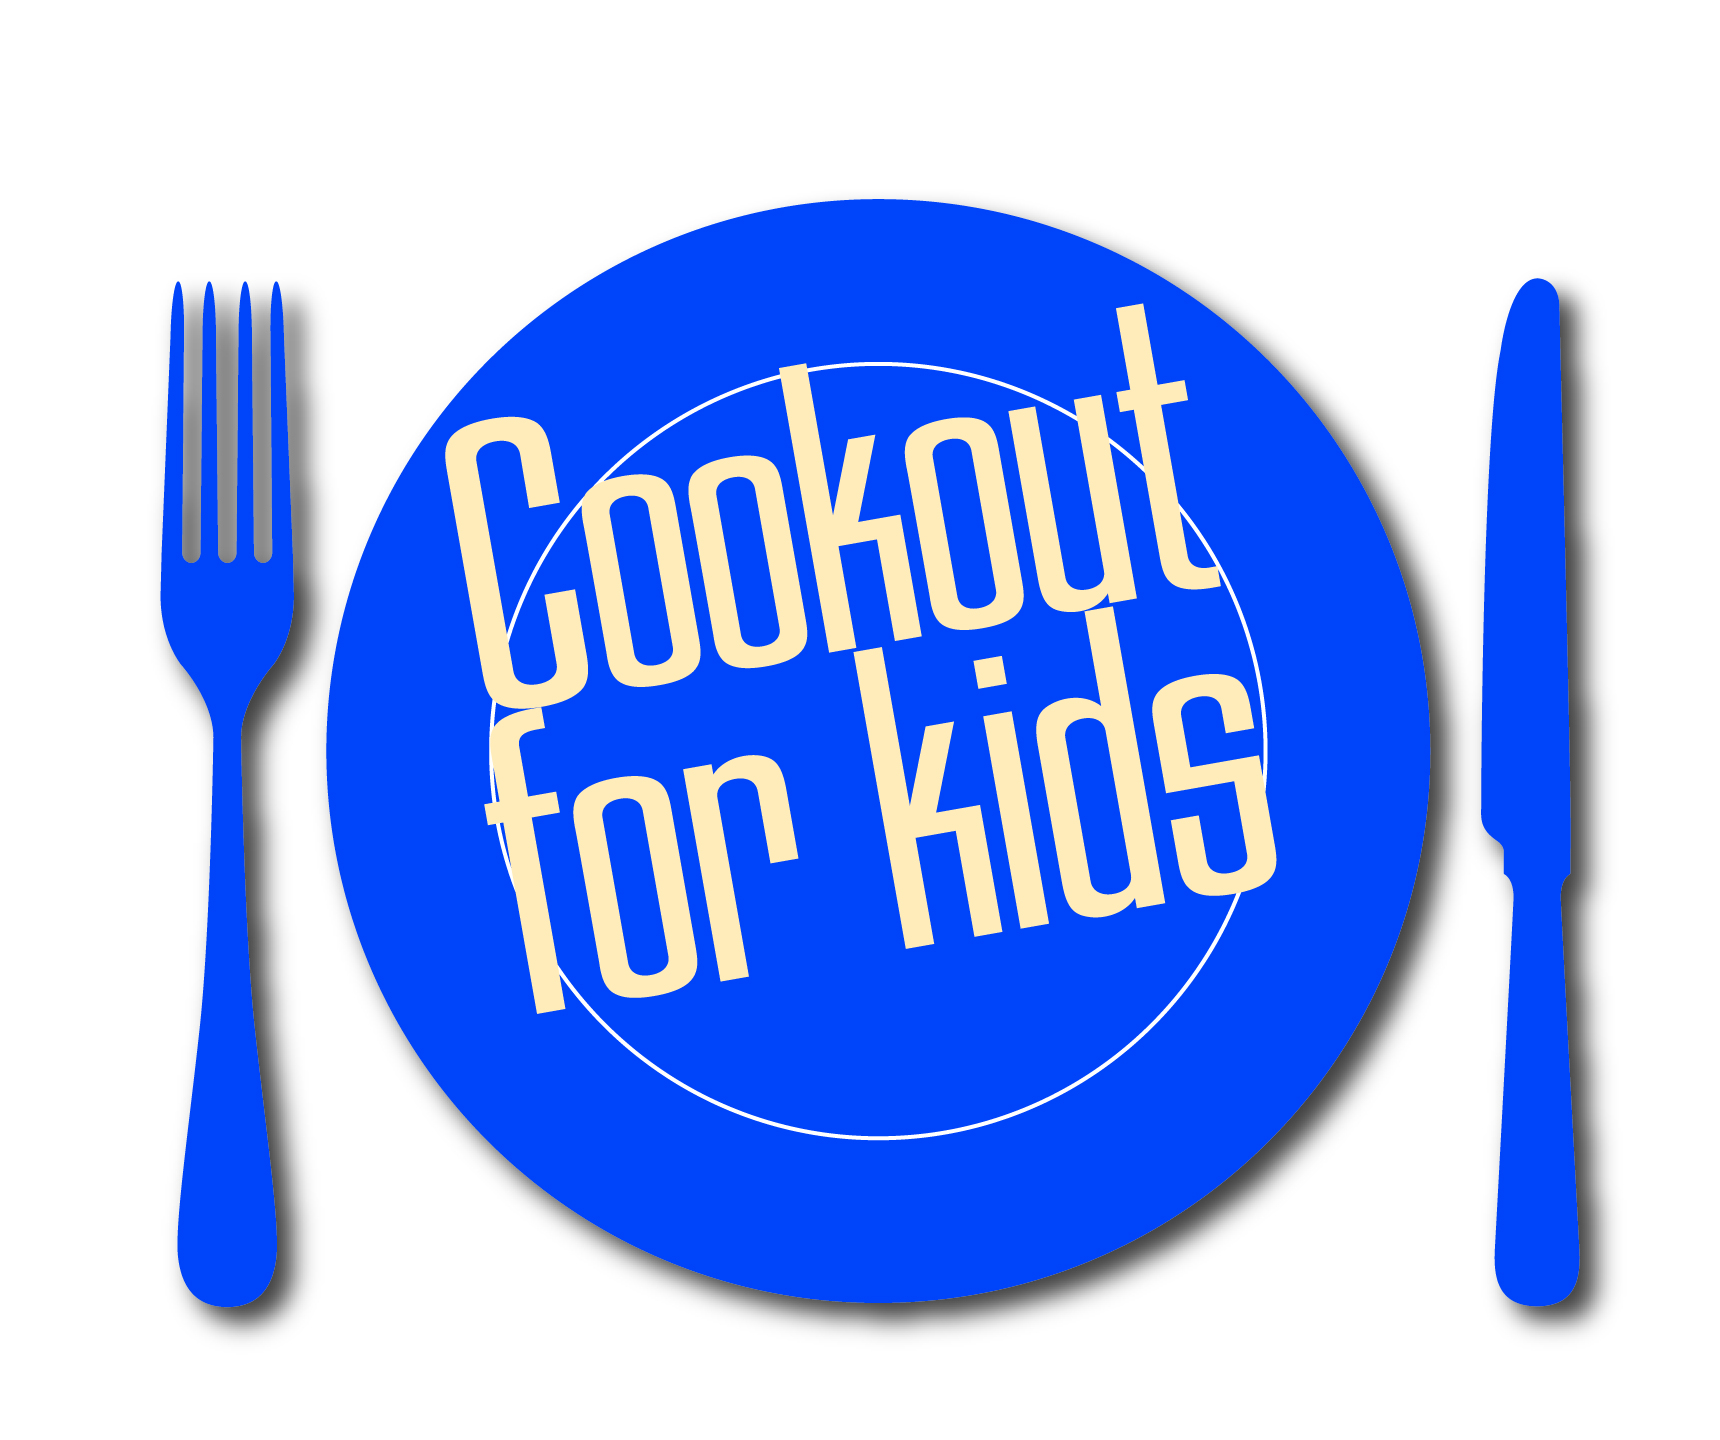 Annual Cook-Out for Kids BBQ